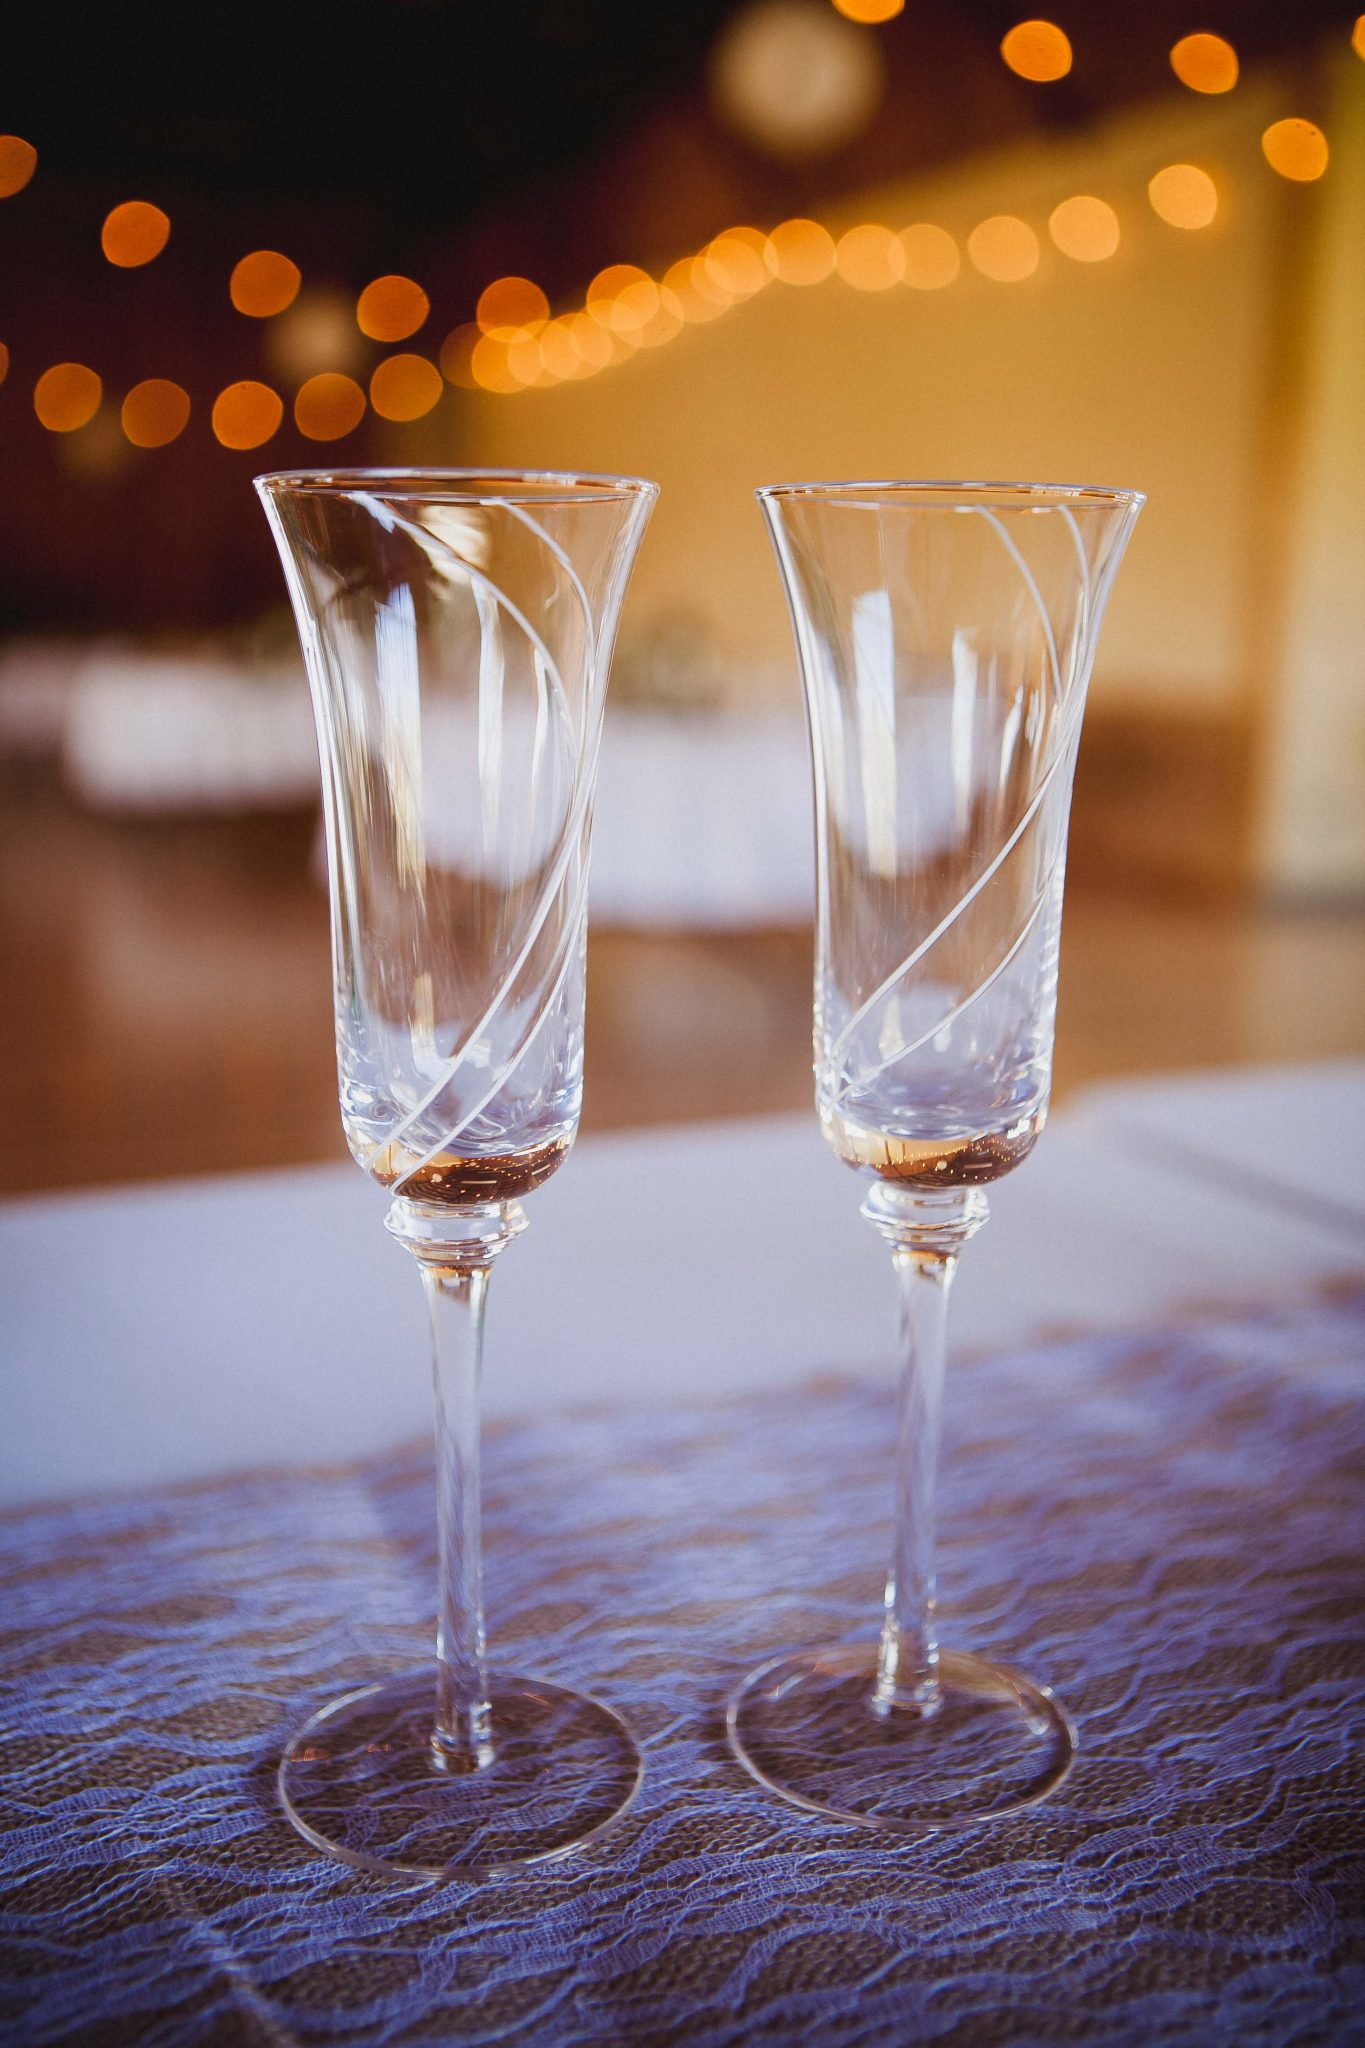 Glass champagne flutes for the bride and groom to use during wedding toasts